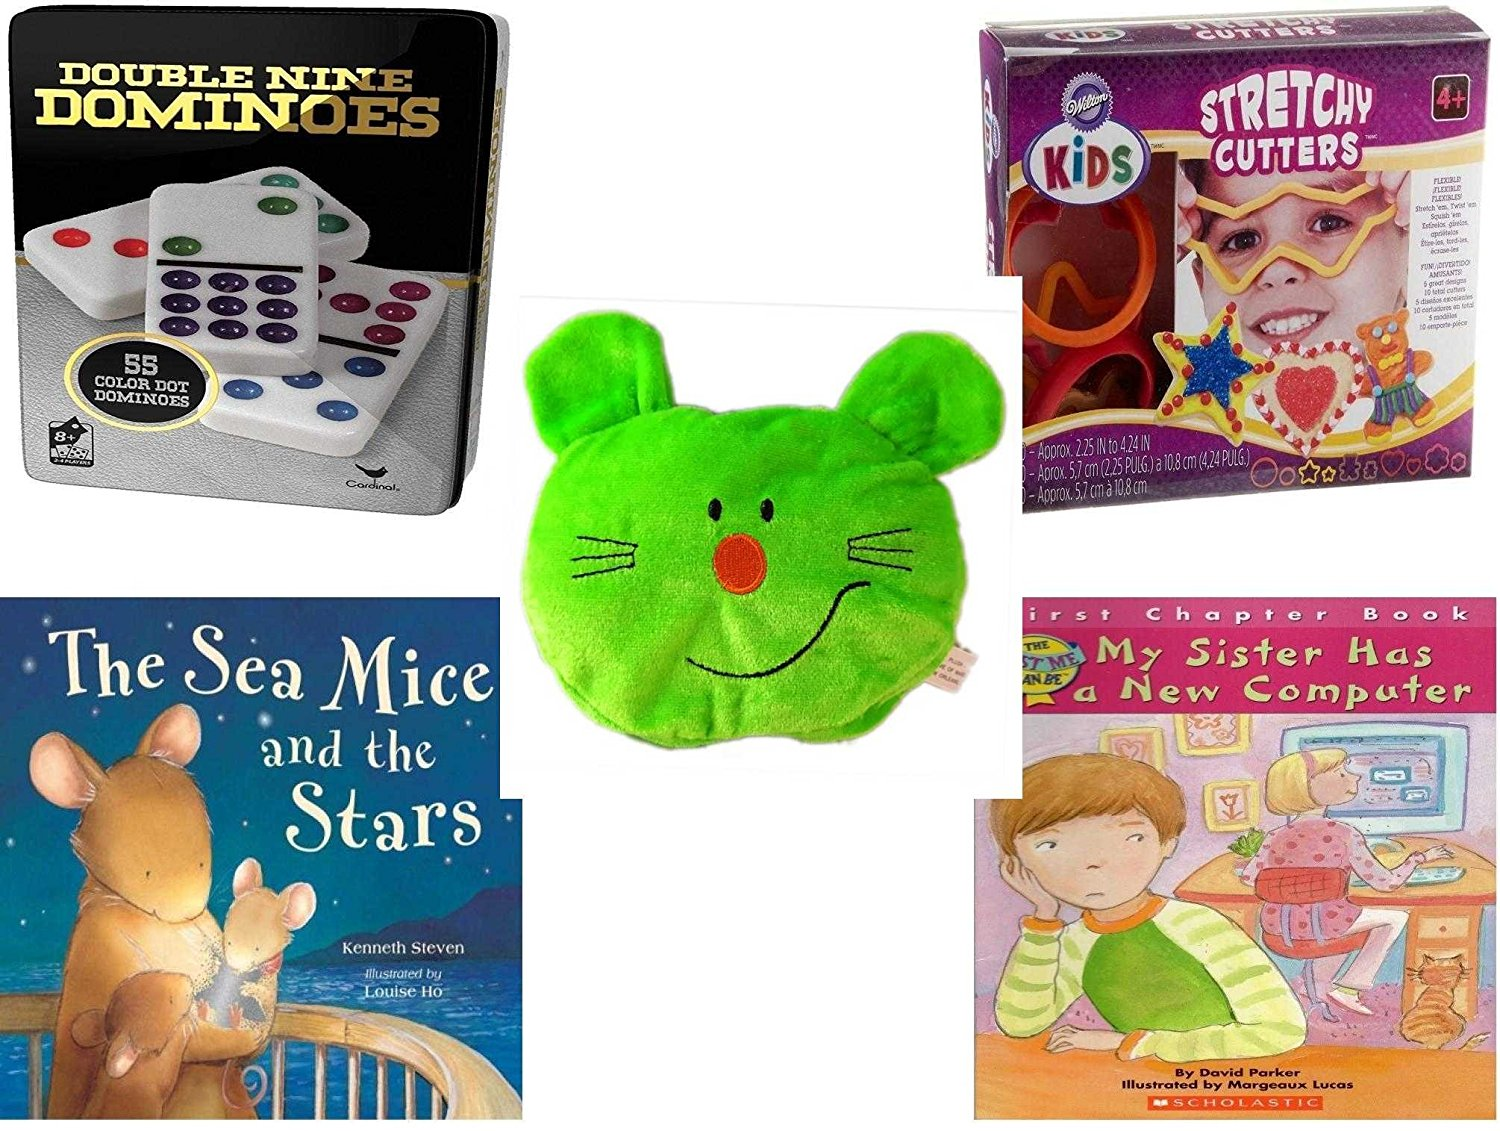 """Children's Gift Bundle - Ages 3-5 [5 Piece] - Double 9 Color Dot Dominoes Game - Wilton Kids Stretchy Silicone Cookie Cutter Set, 10-Piece - Plush Appeal Bright Green Kitty Cat Face Plush 5"""" - Sea M"""